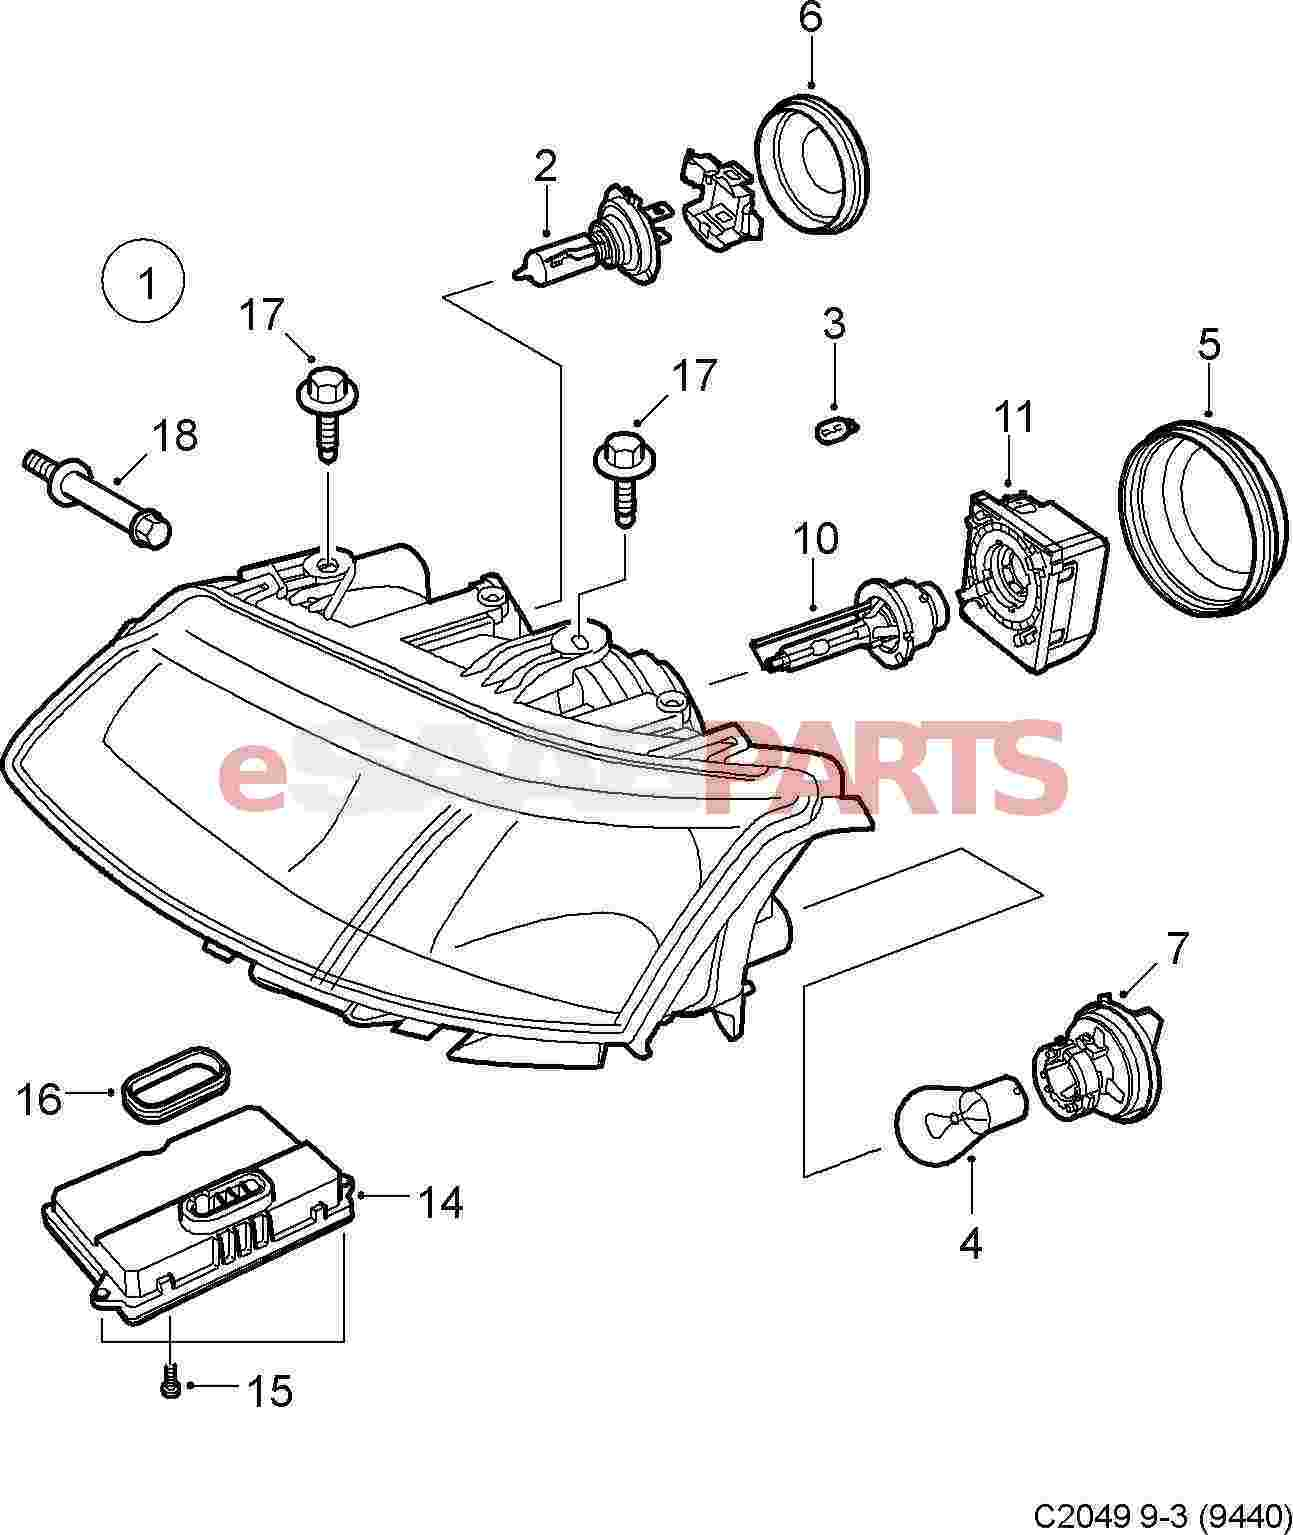 saab 9 3 car headlights diagram  saab  auto parts catalog